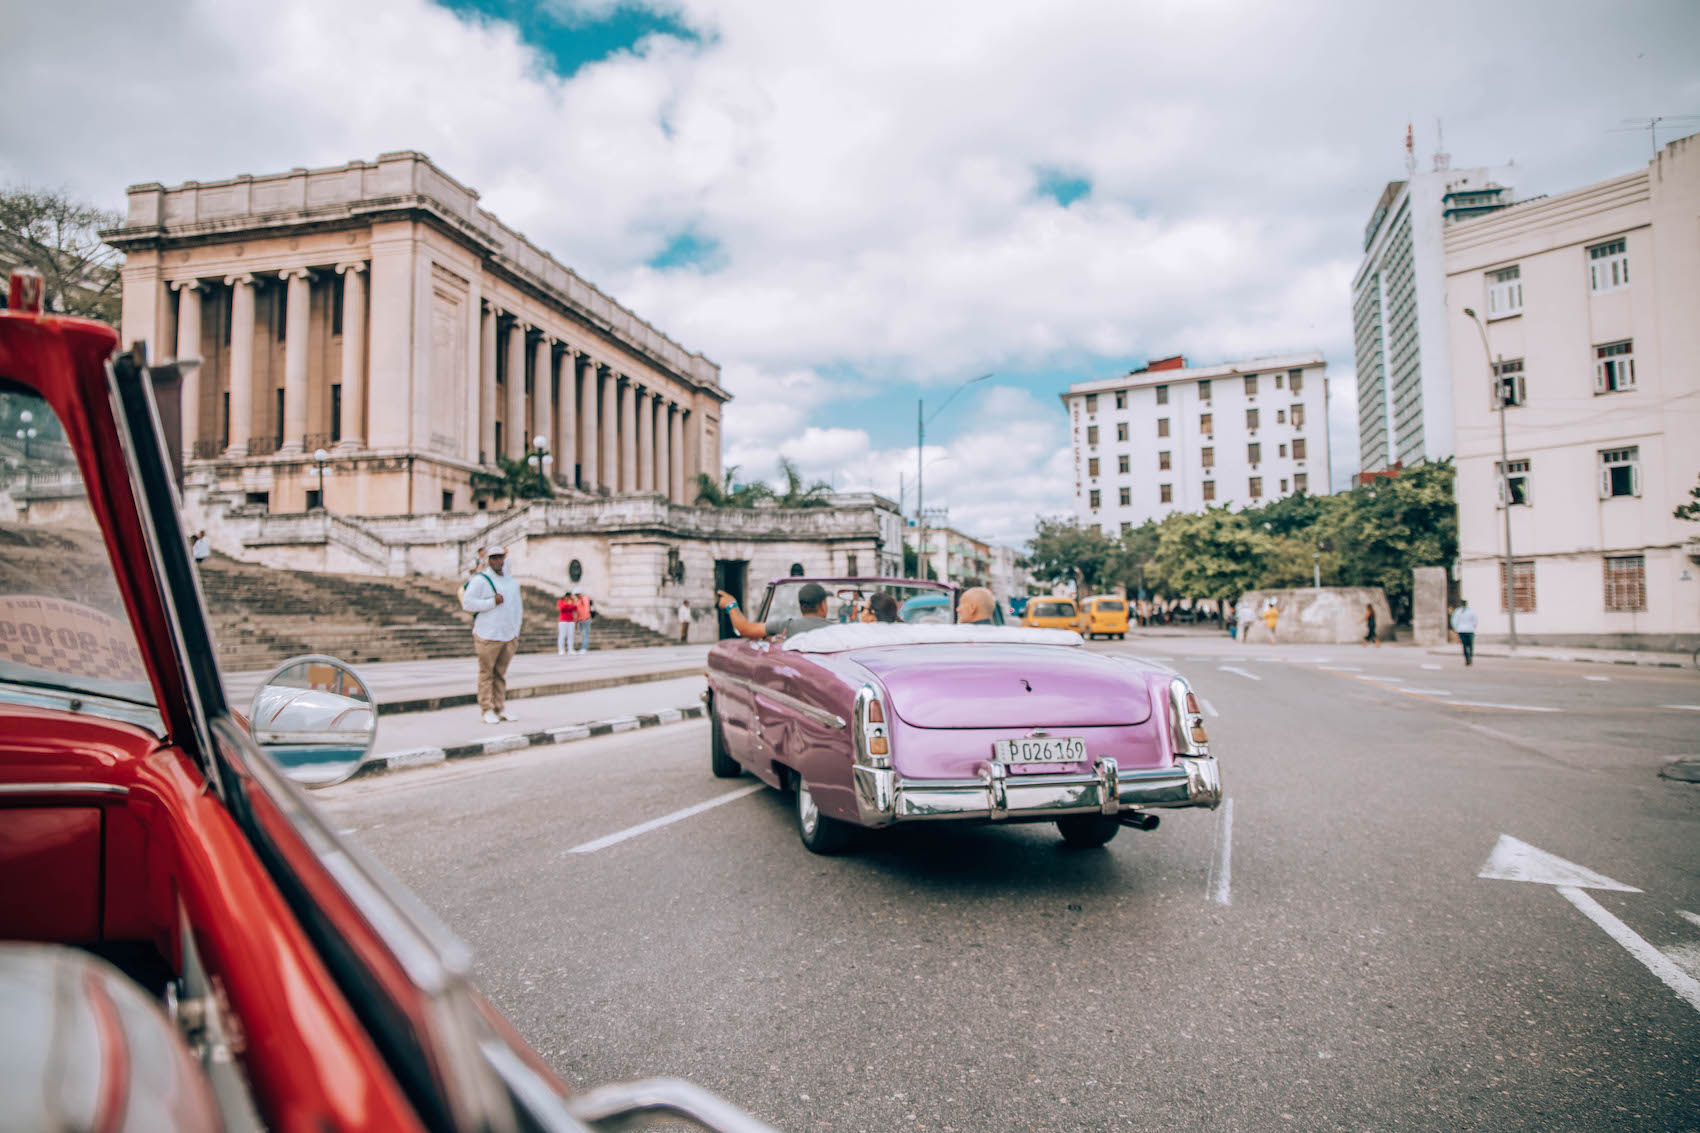 misconceptions-about-cuba-travel-11.jpeg